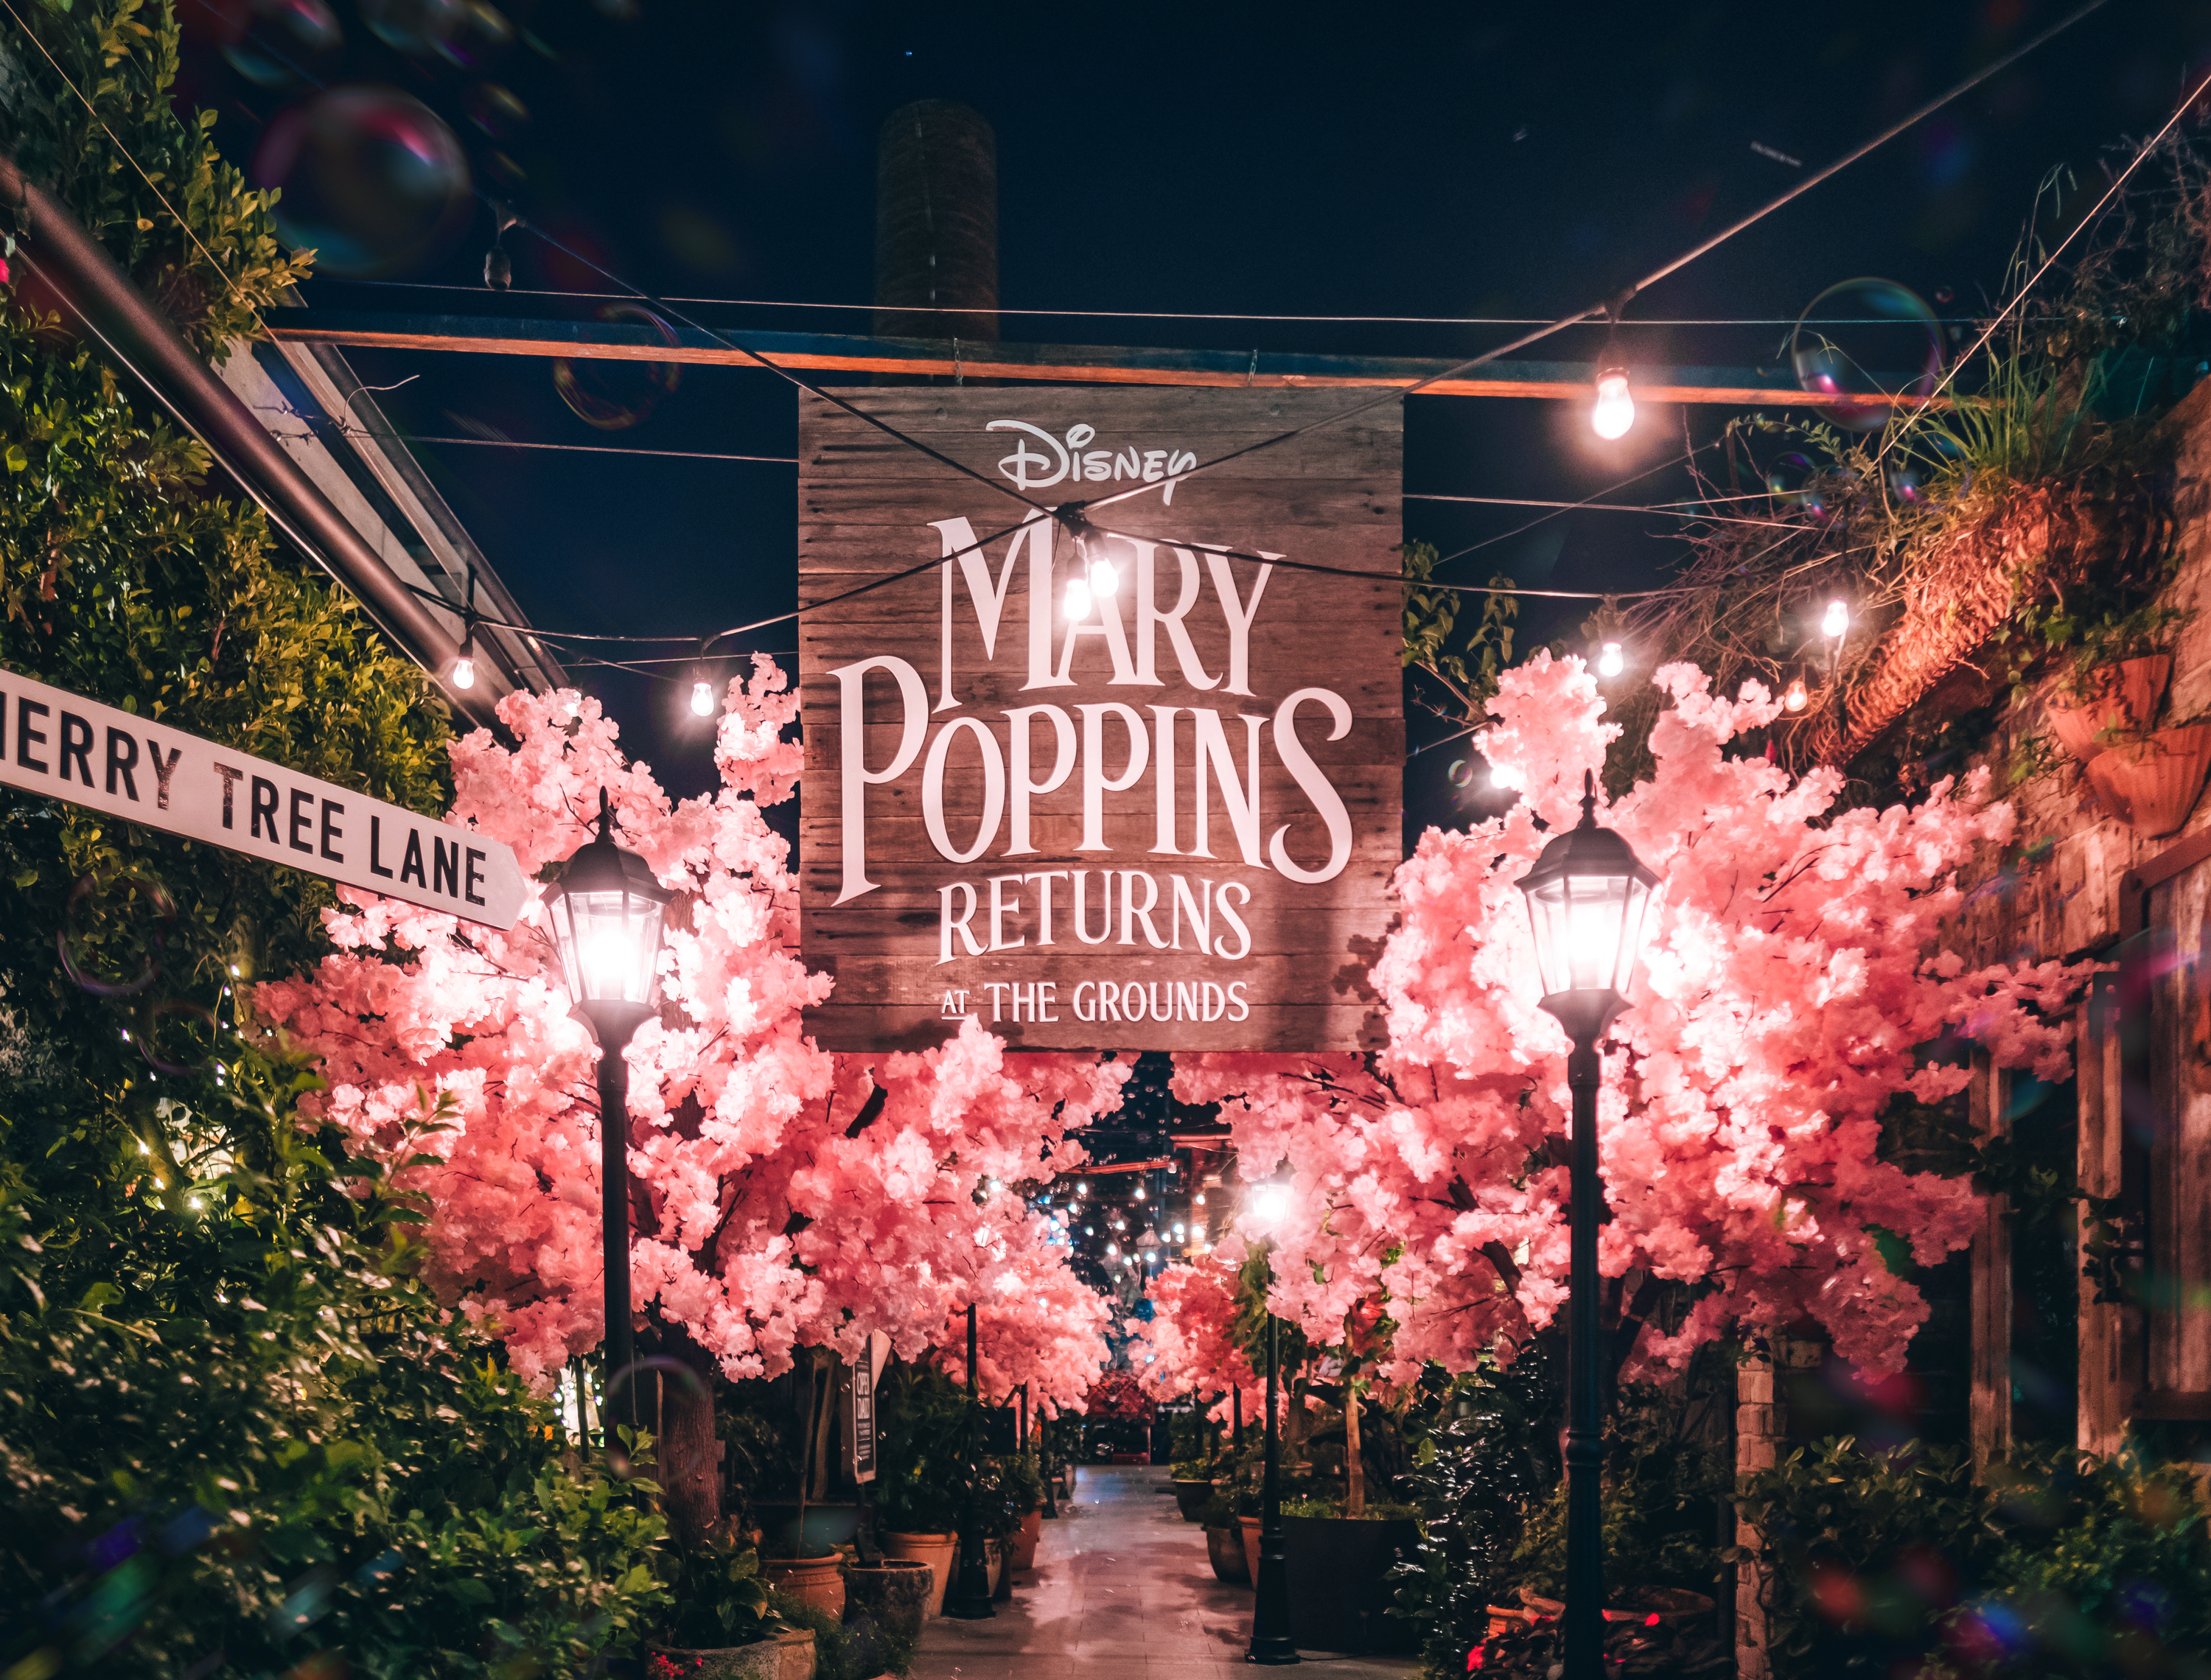 Marry Poppins pop-up.